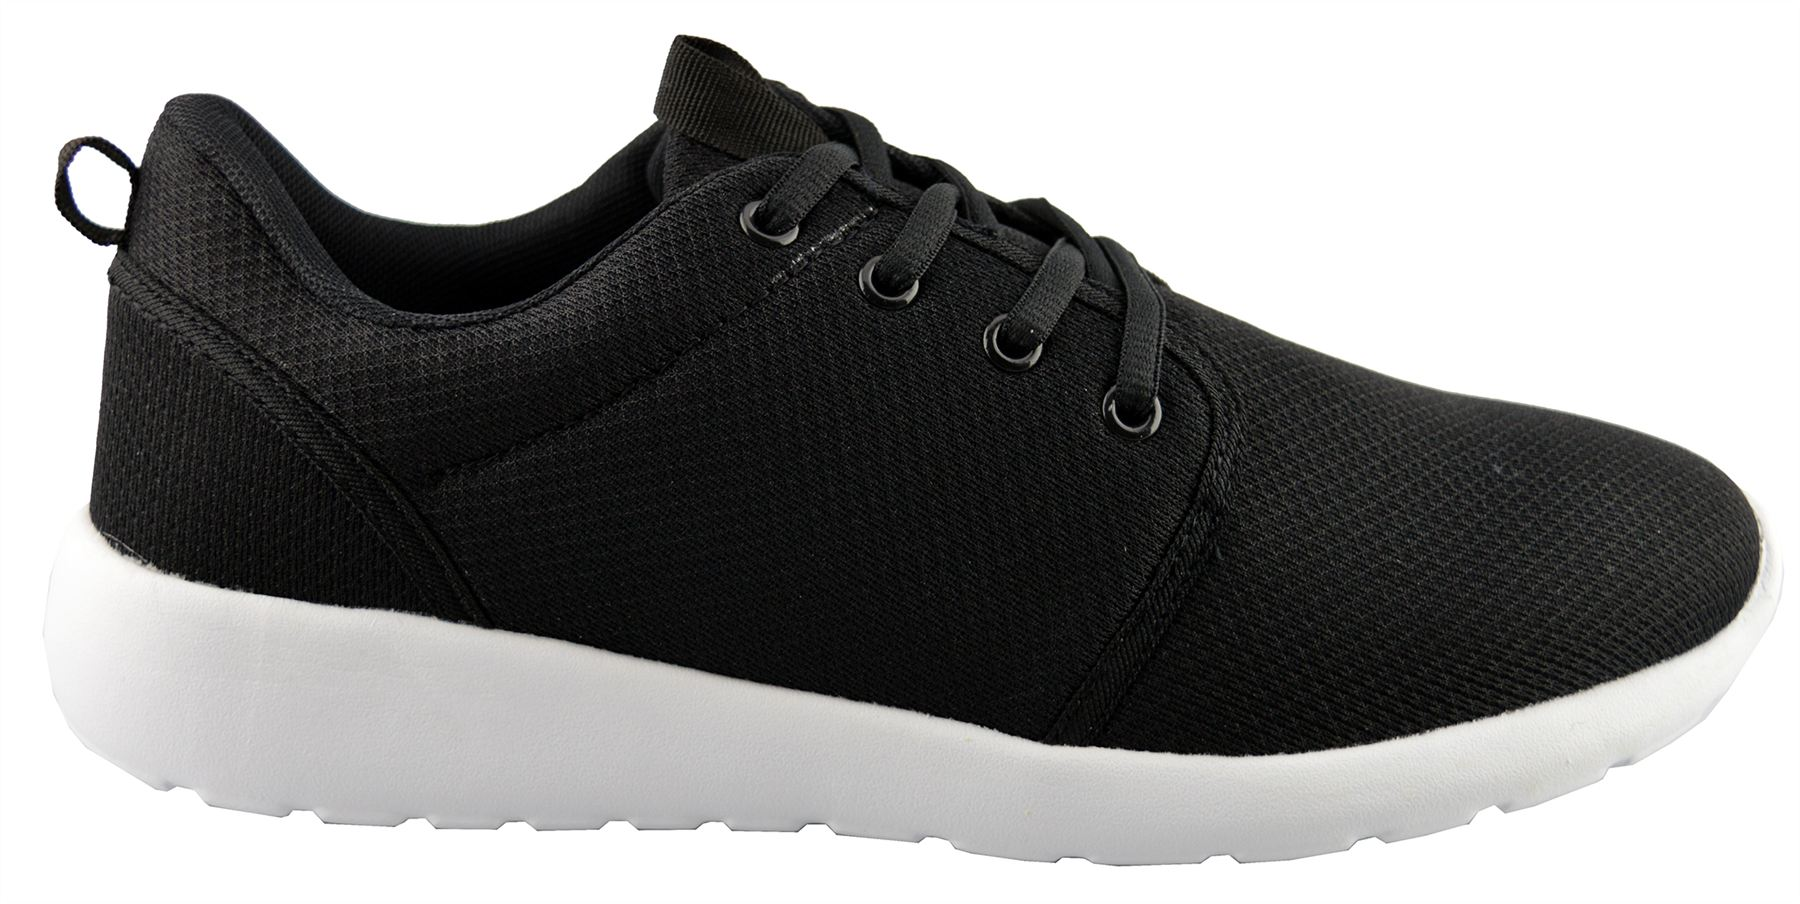 Mens Boys Superlight Memory Foam Lace Up Running Walking Trainers Shoes  Size. Visit Online Store